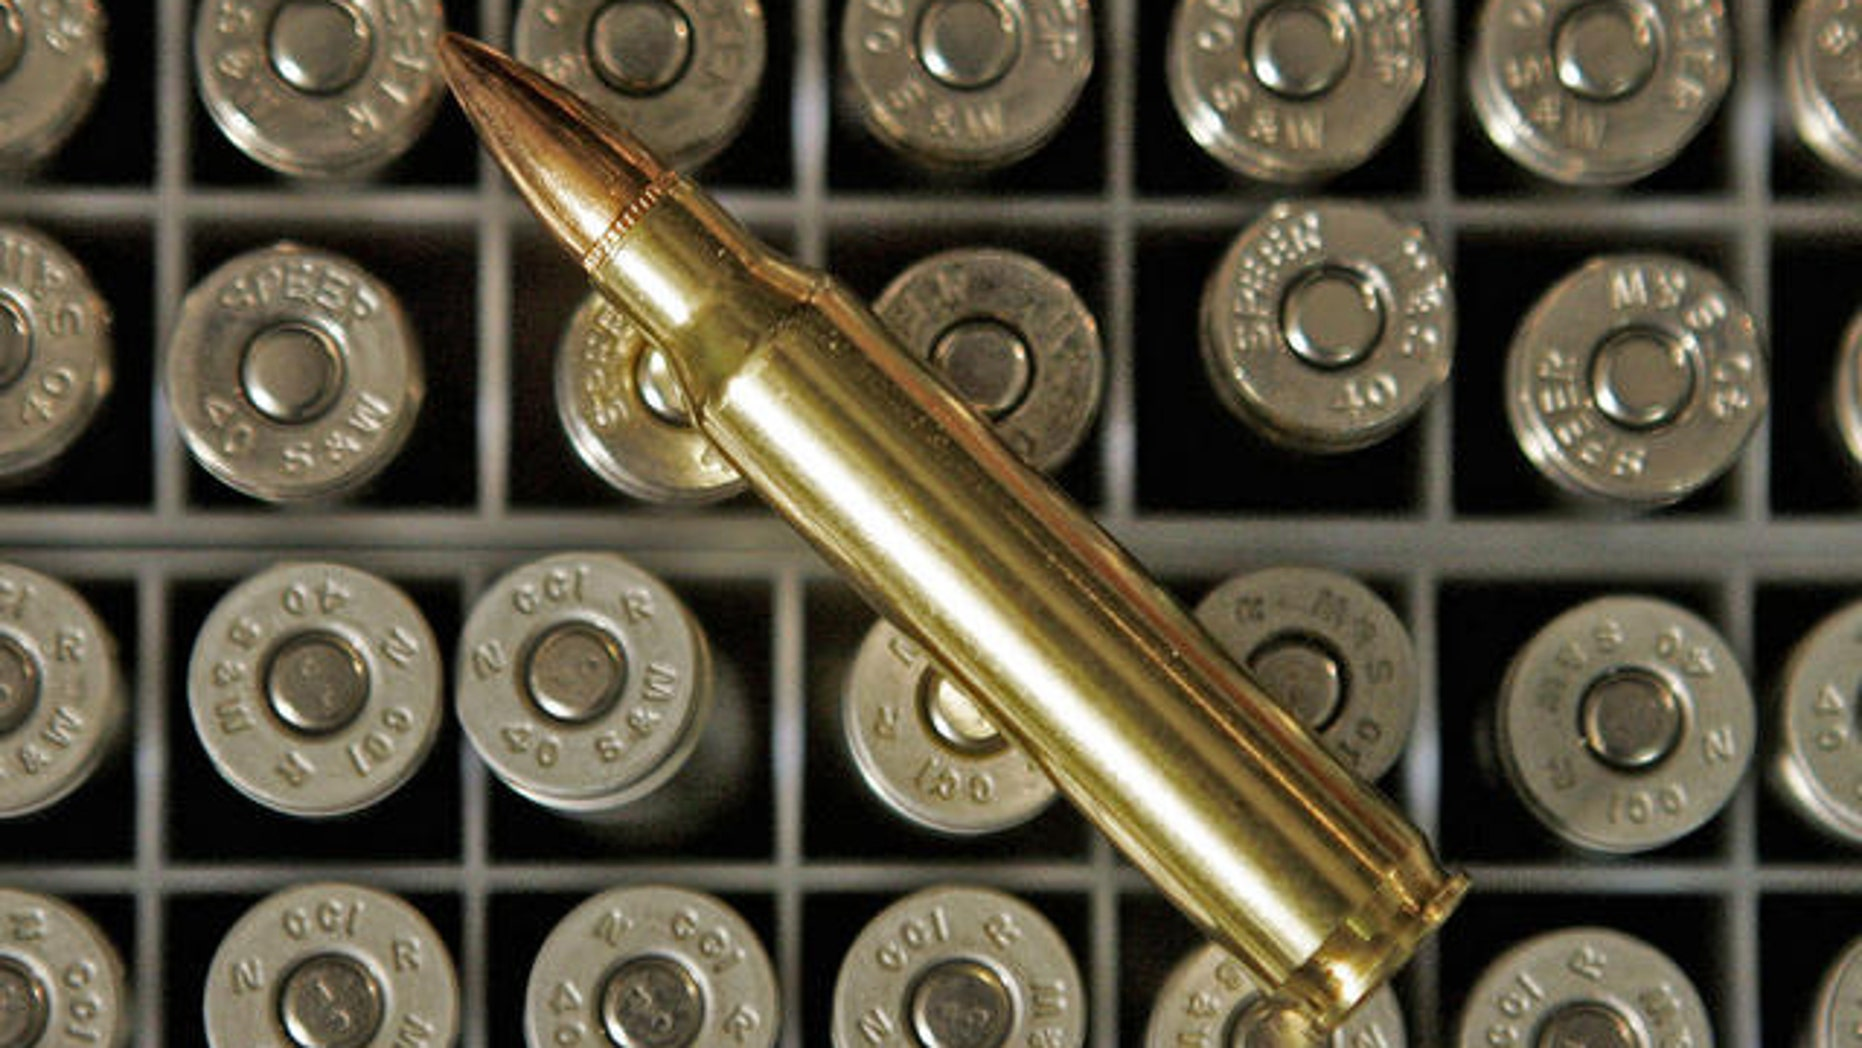 Shown here are .223 caliber bullets.